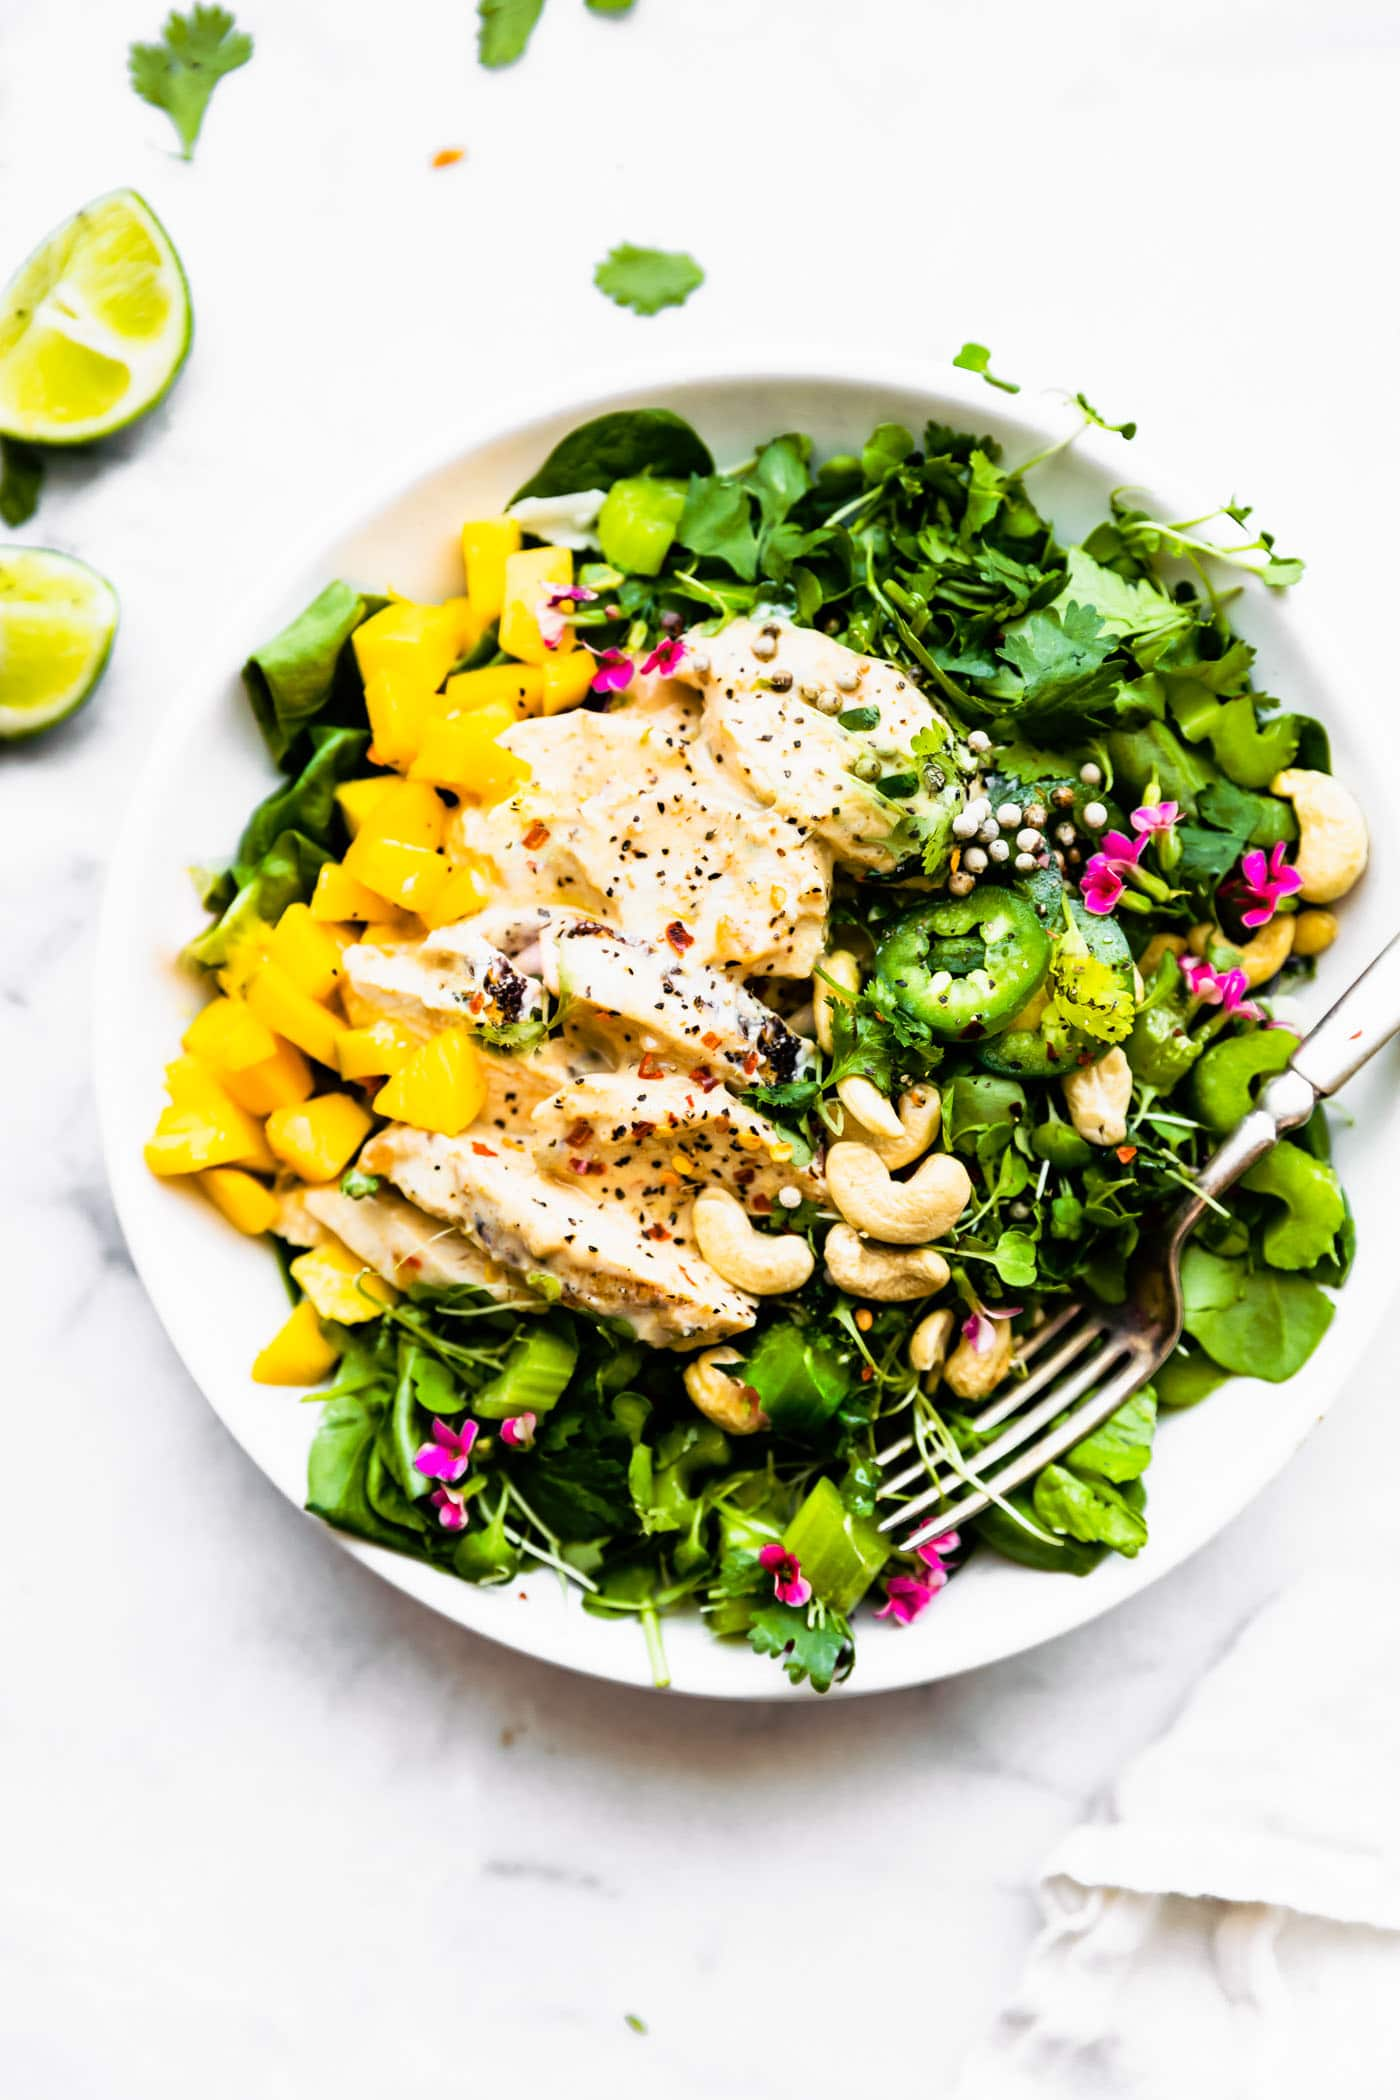 Curry Chicken Salad - Paleo, meal prep friendly!